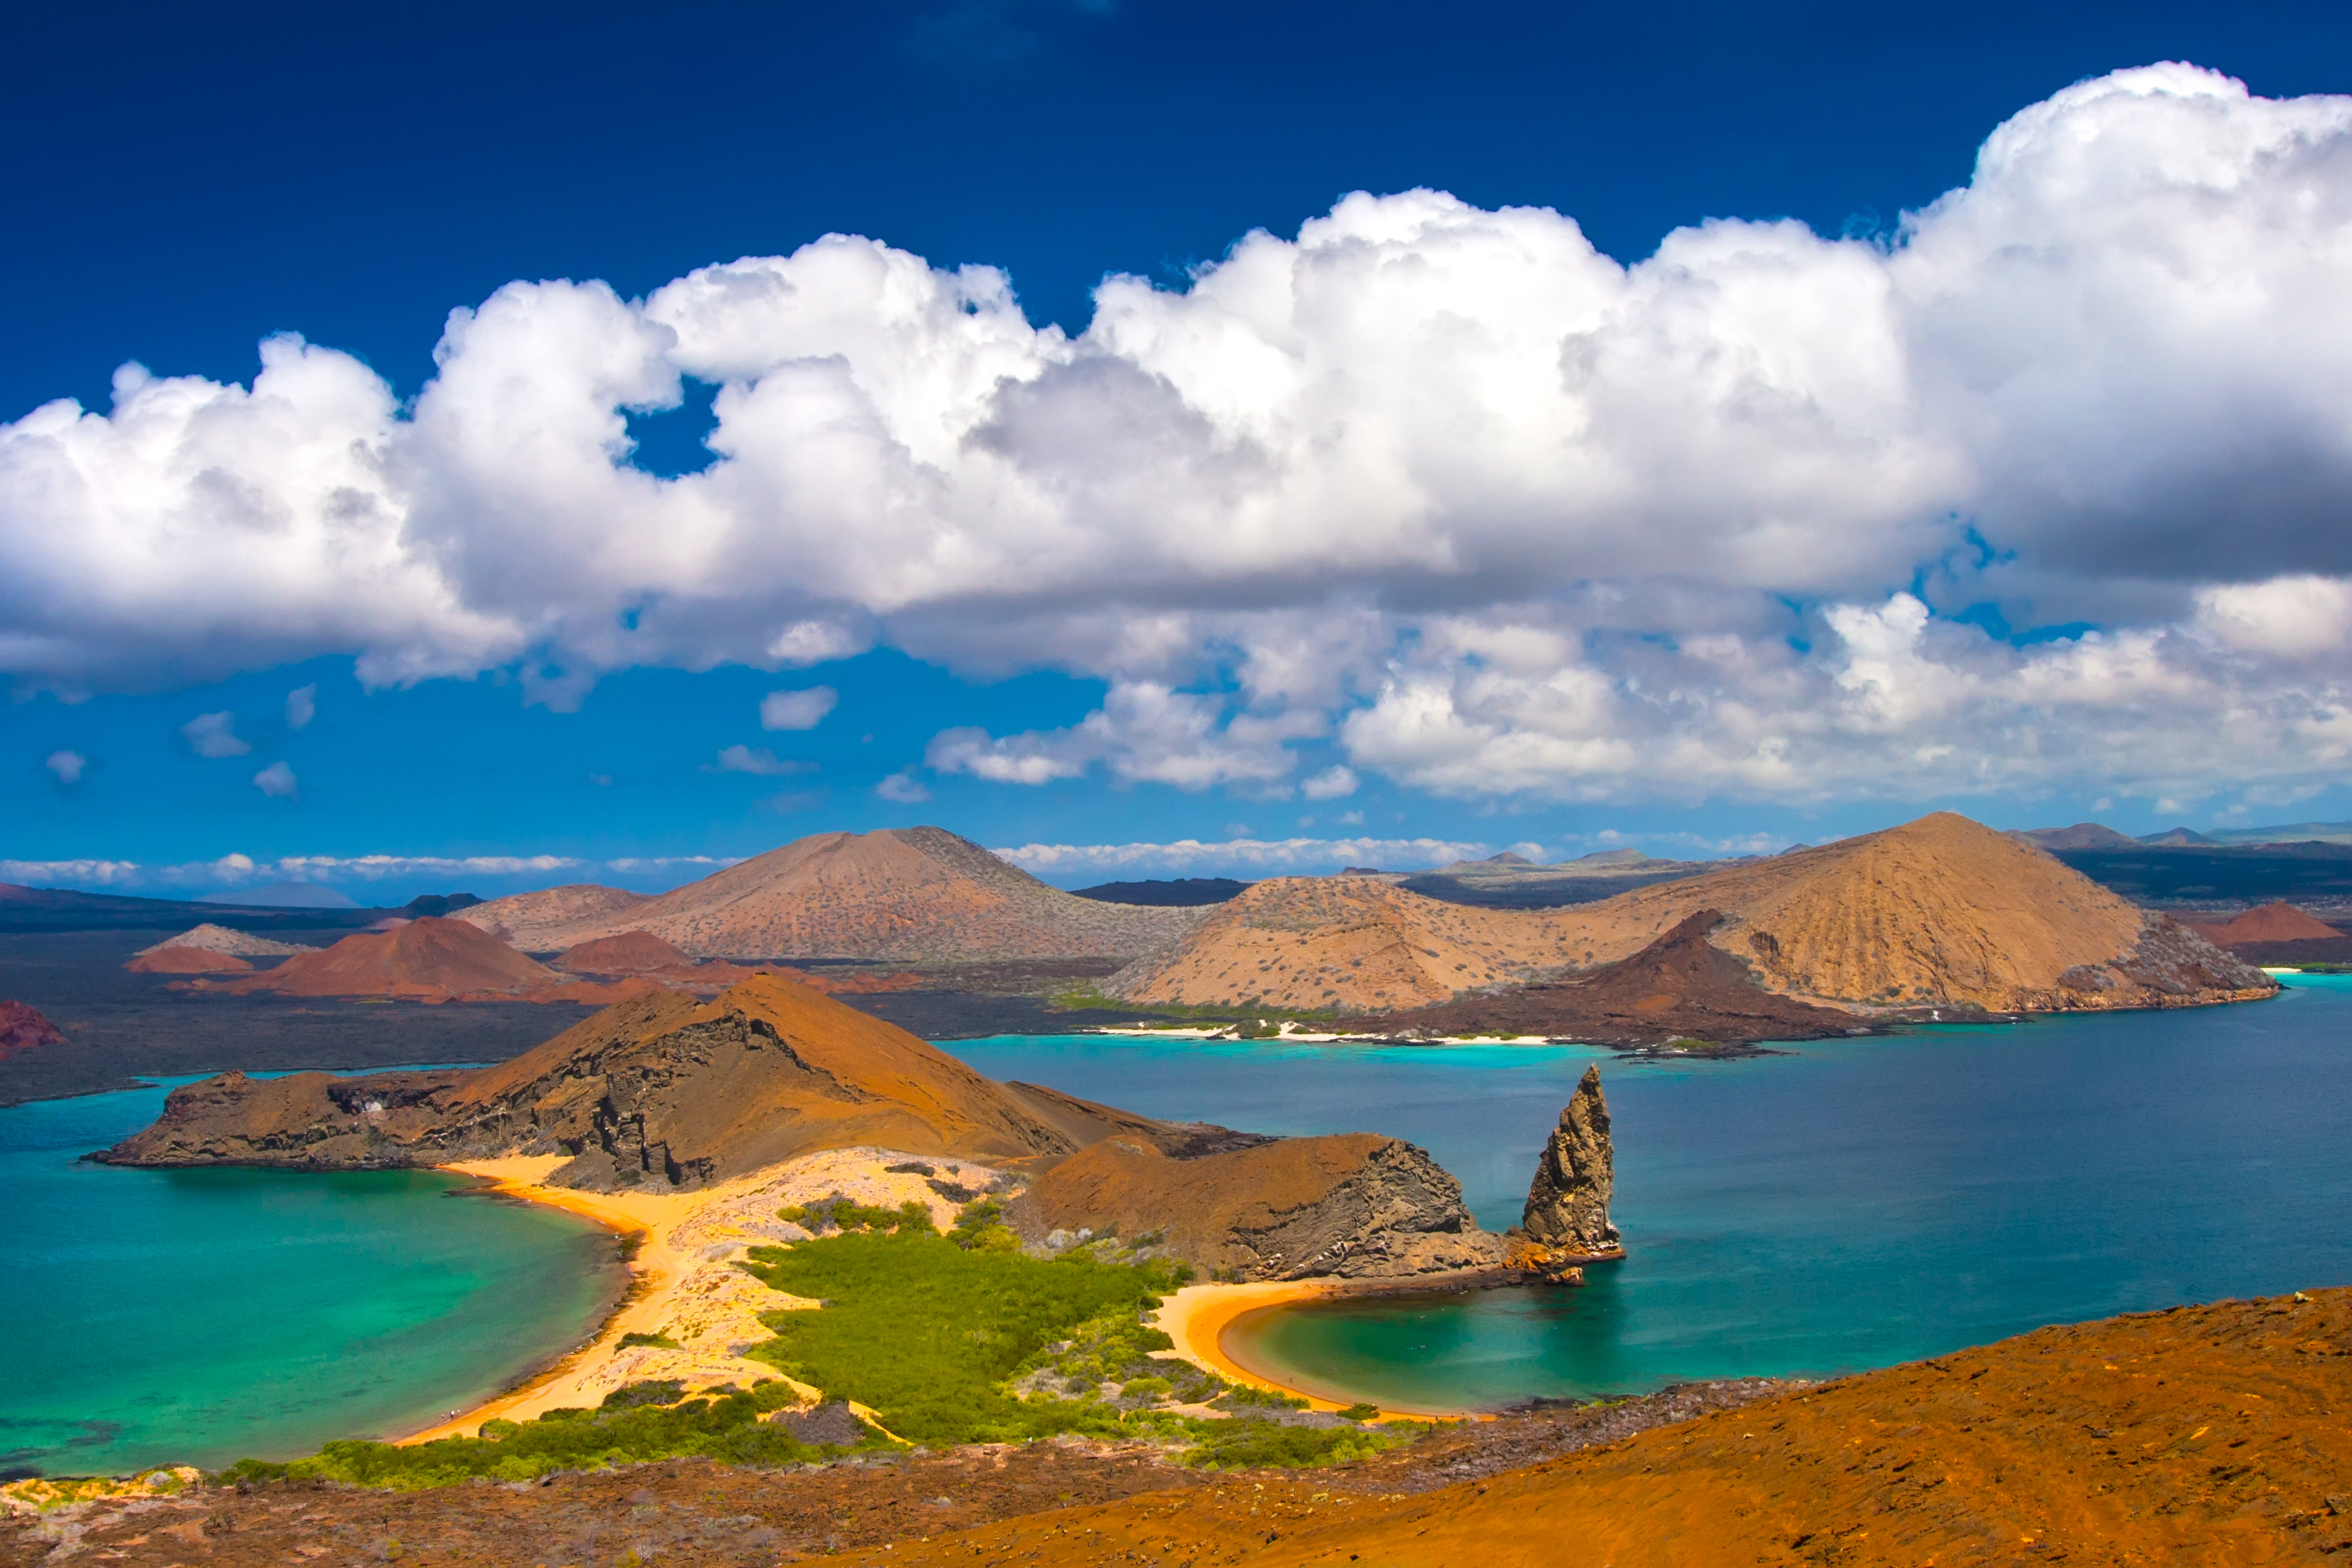 MOBILIZING GCF FUNDS FOR GALAPAGOS